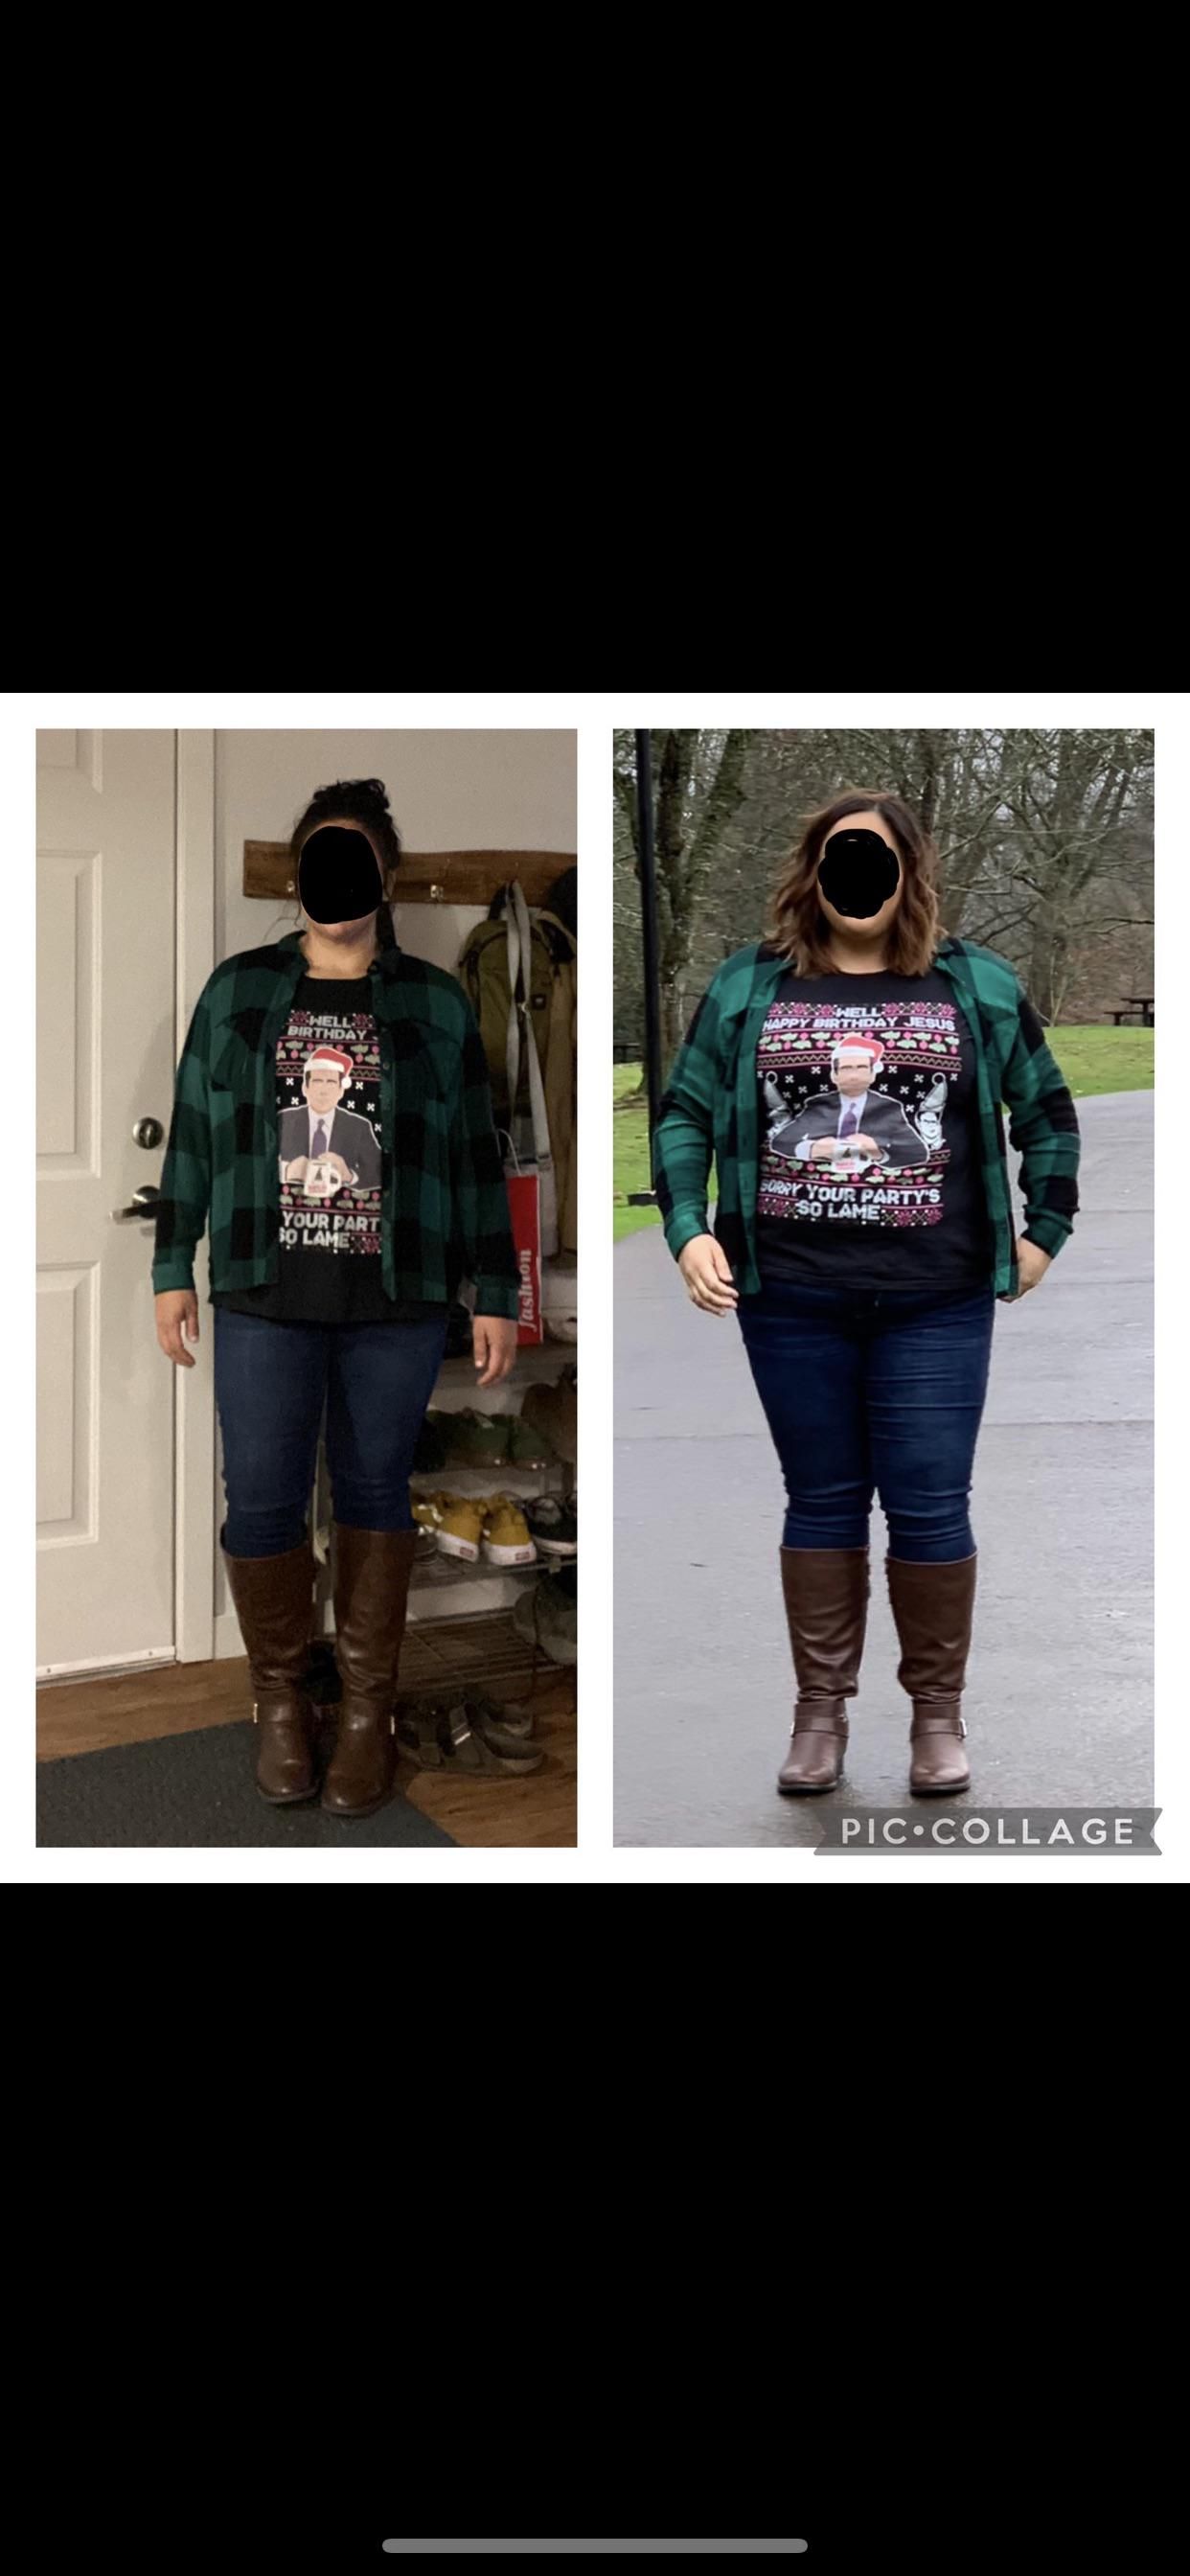 Before and After 44 lbs Weight Loss 5 foot 4 Female 252 lbs to 208 lbs